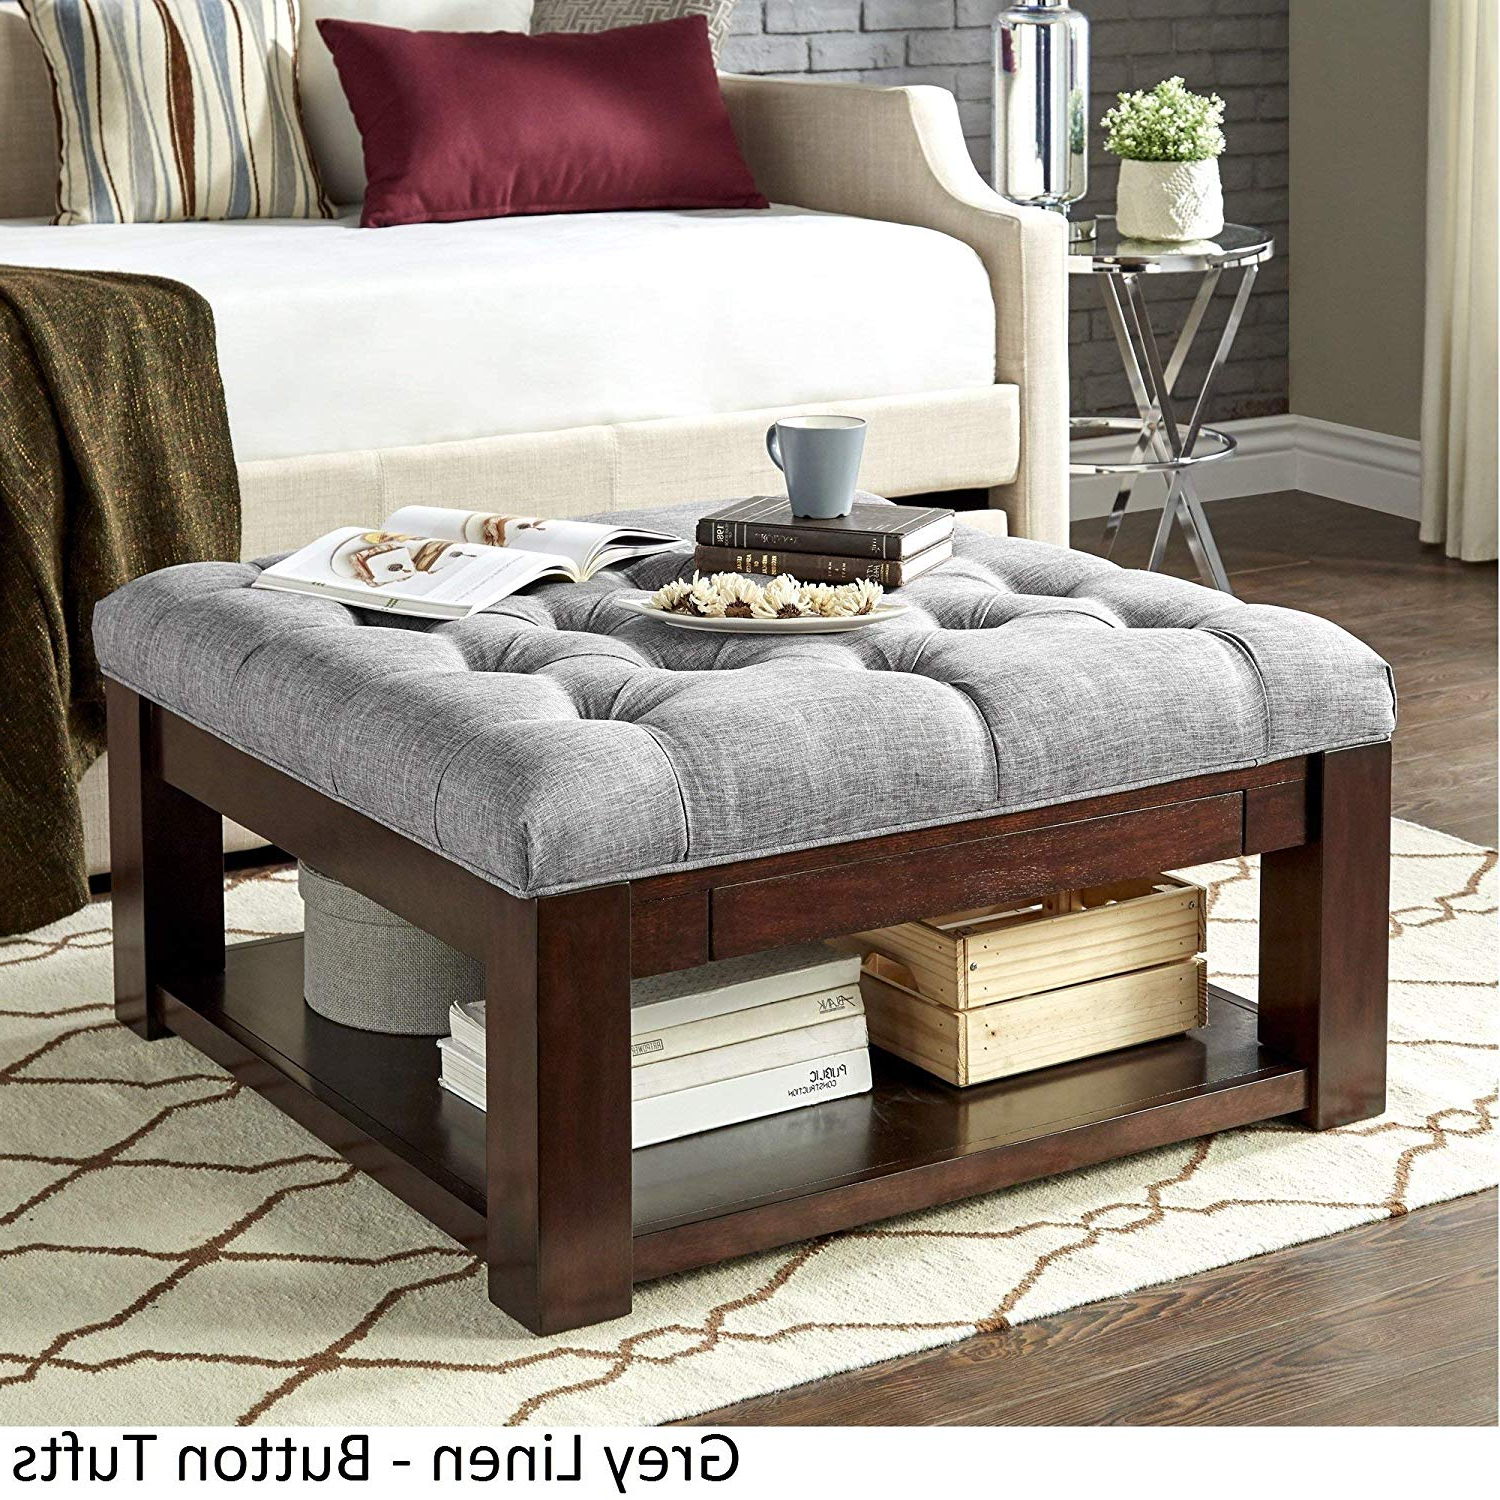 Recent Lennon Pine Planked Storage Ottoman Coffee Tables Pertaining To Storage Ottoman Coffee Table – Andrewab.co (View 14 of 20)